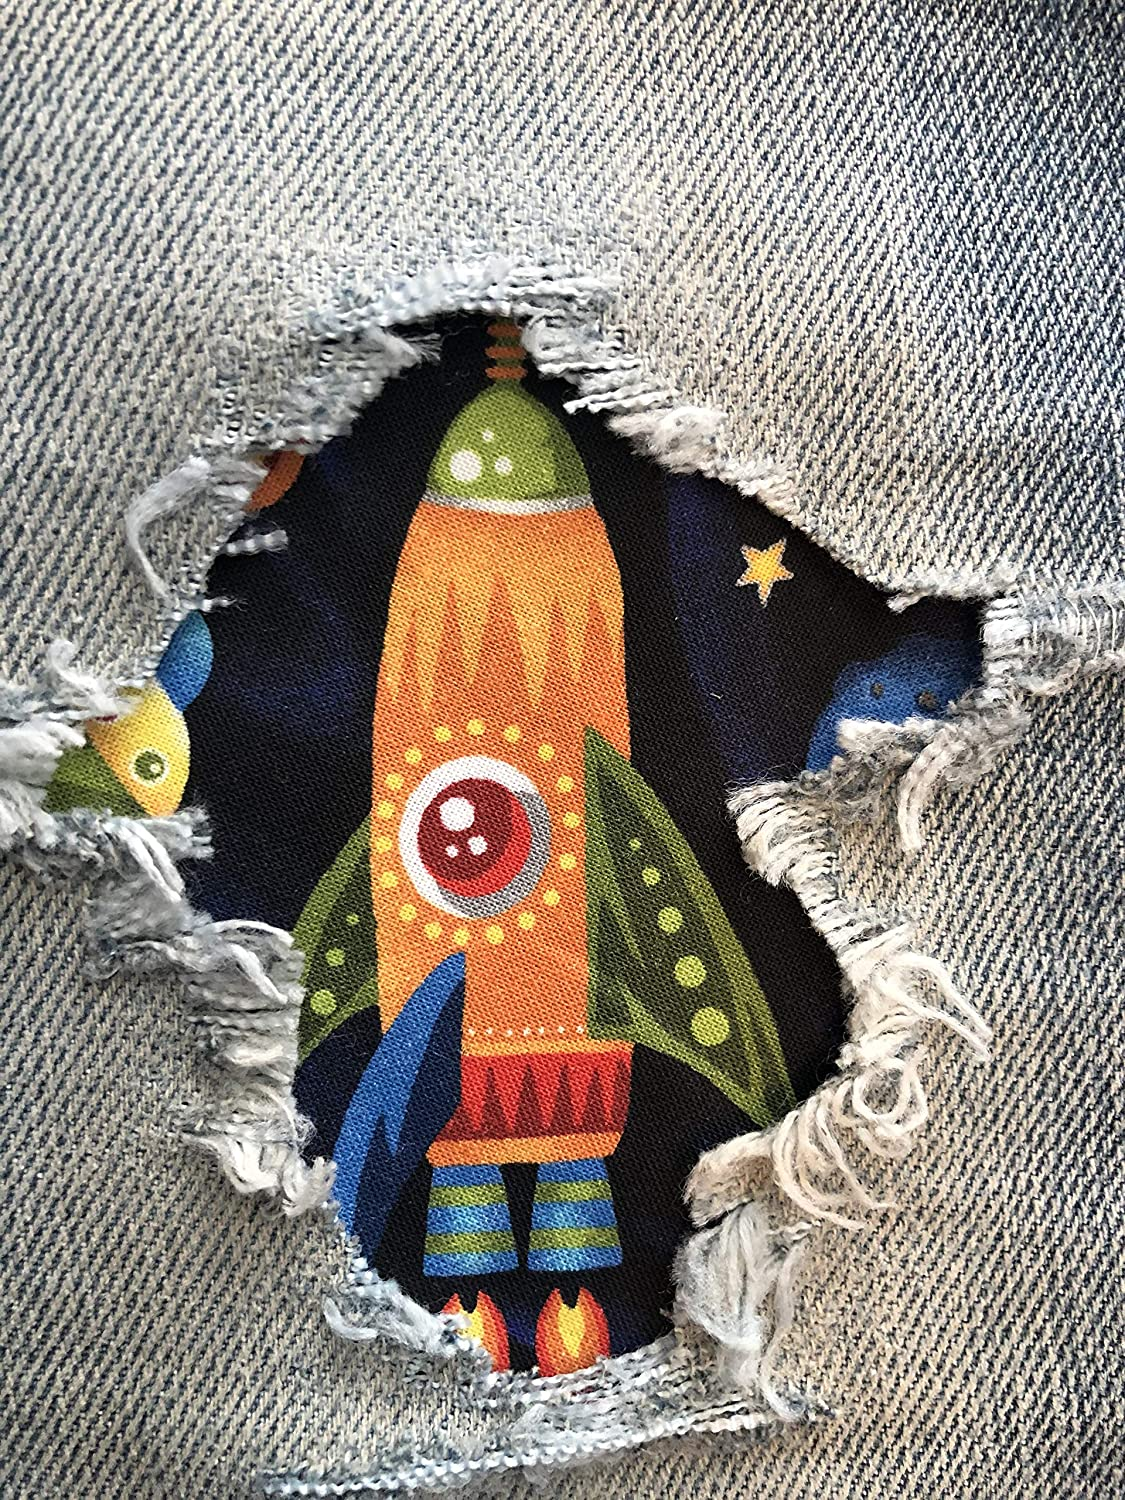 4 x 4 Launch Party Rockets Peek-A-Boo Iron On Patches by Holey Patches in Assorted Sizes